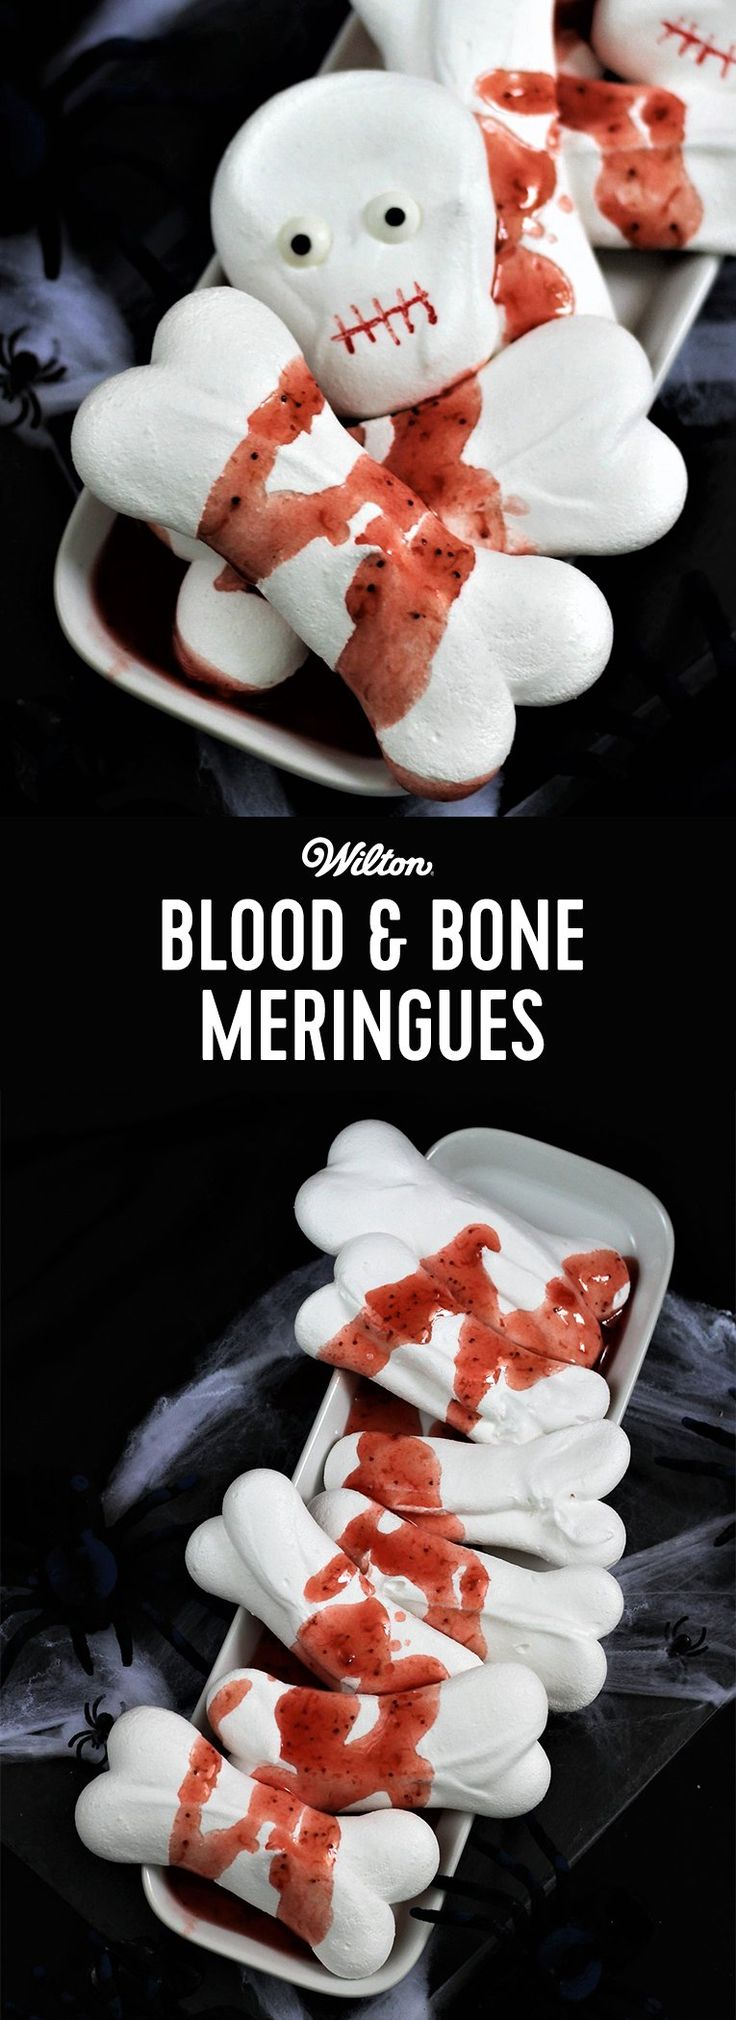 how to make blood and bone fertilizer